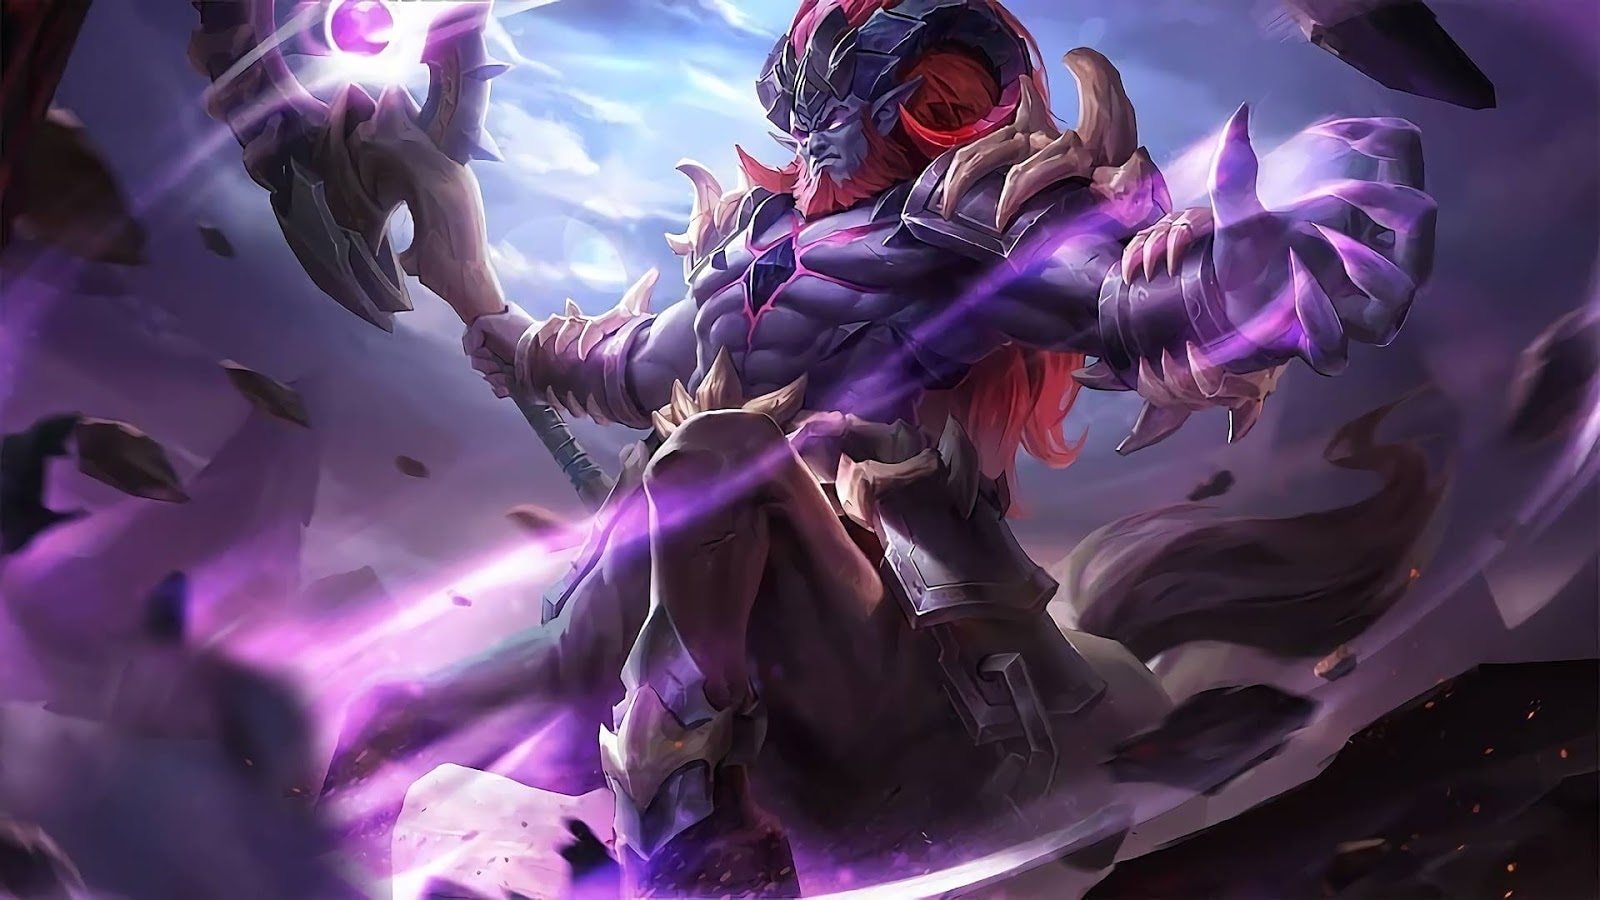 Wallpaper Hylos Abyssal Shaman Skin Mobile Legends HD for PC